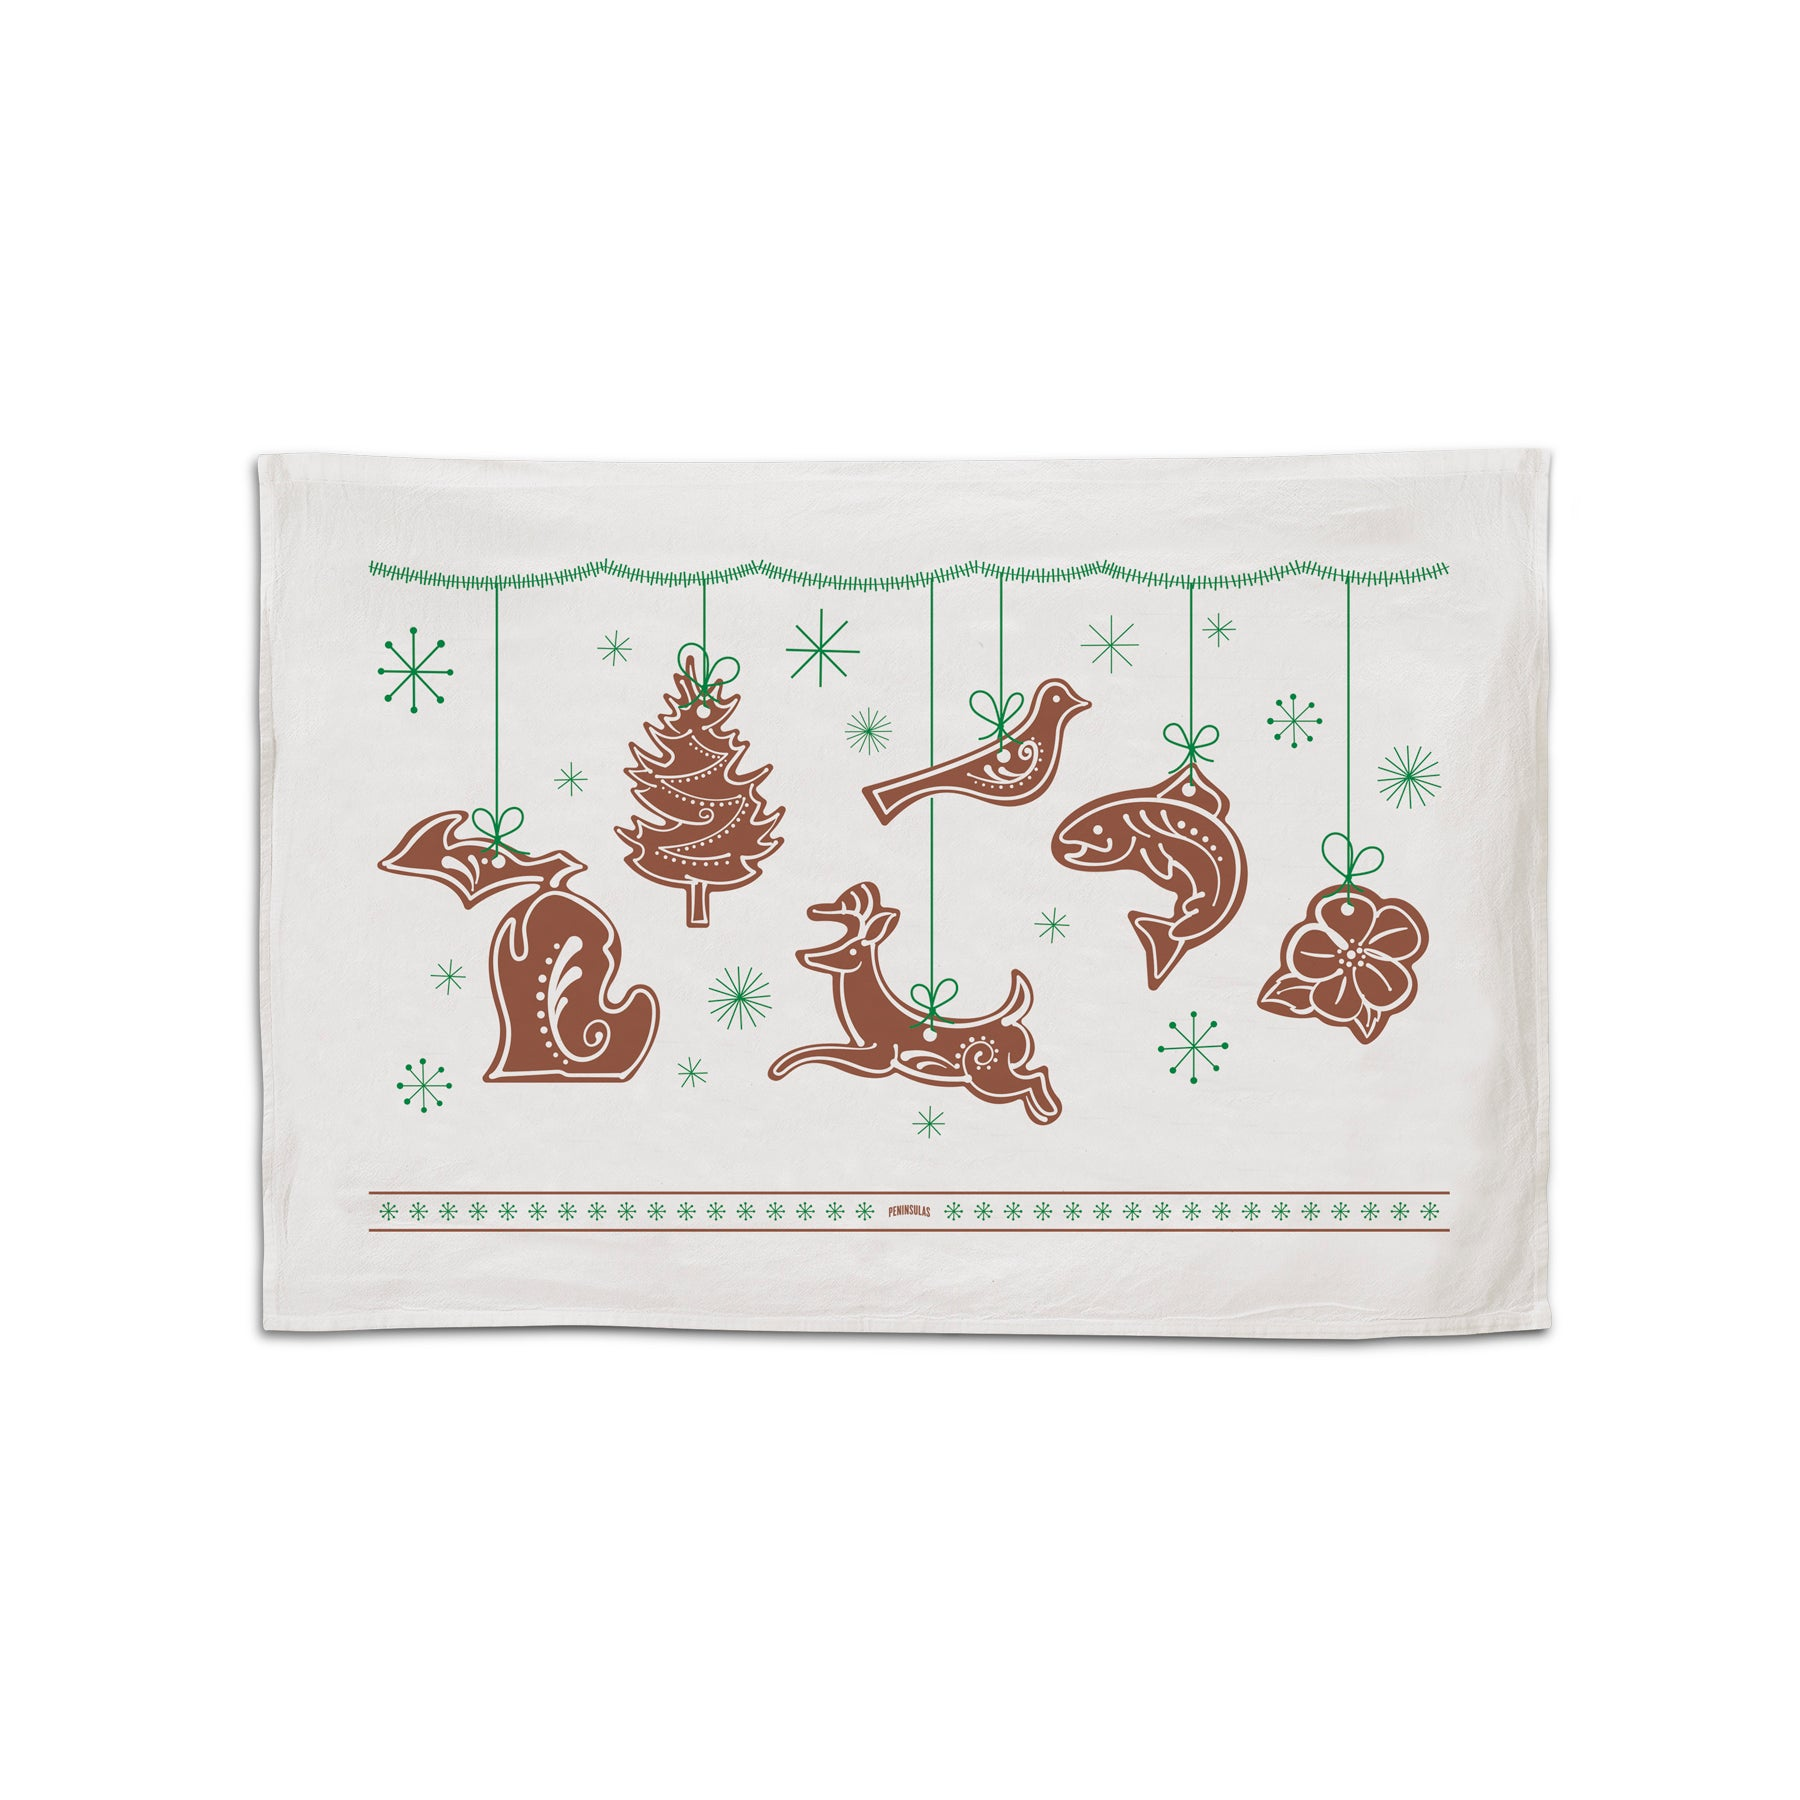 Michigan Gingerbread Holiday Flour Sack Towel